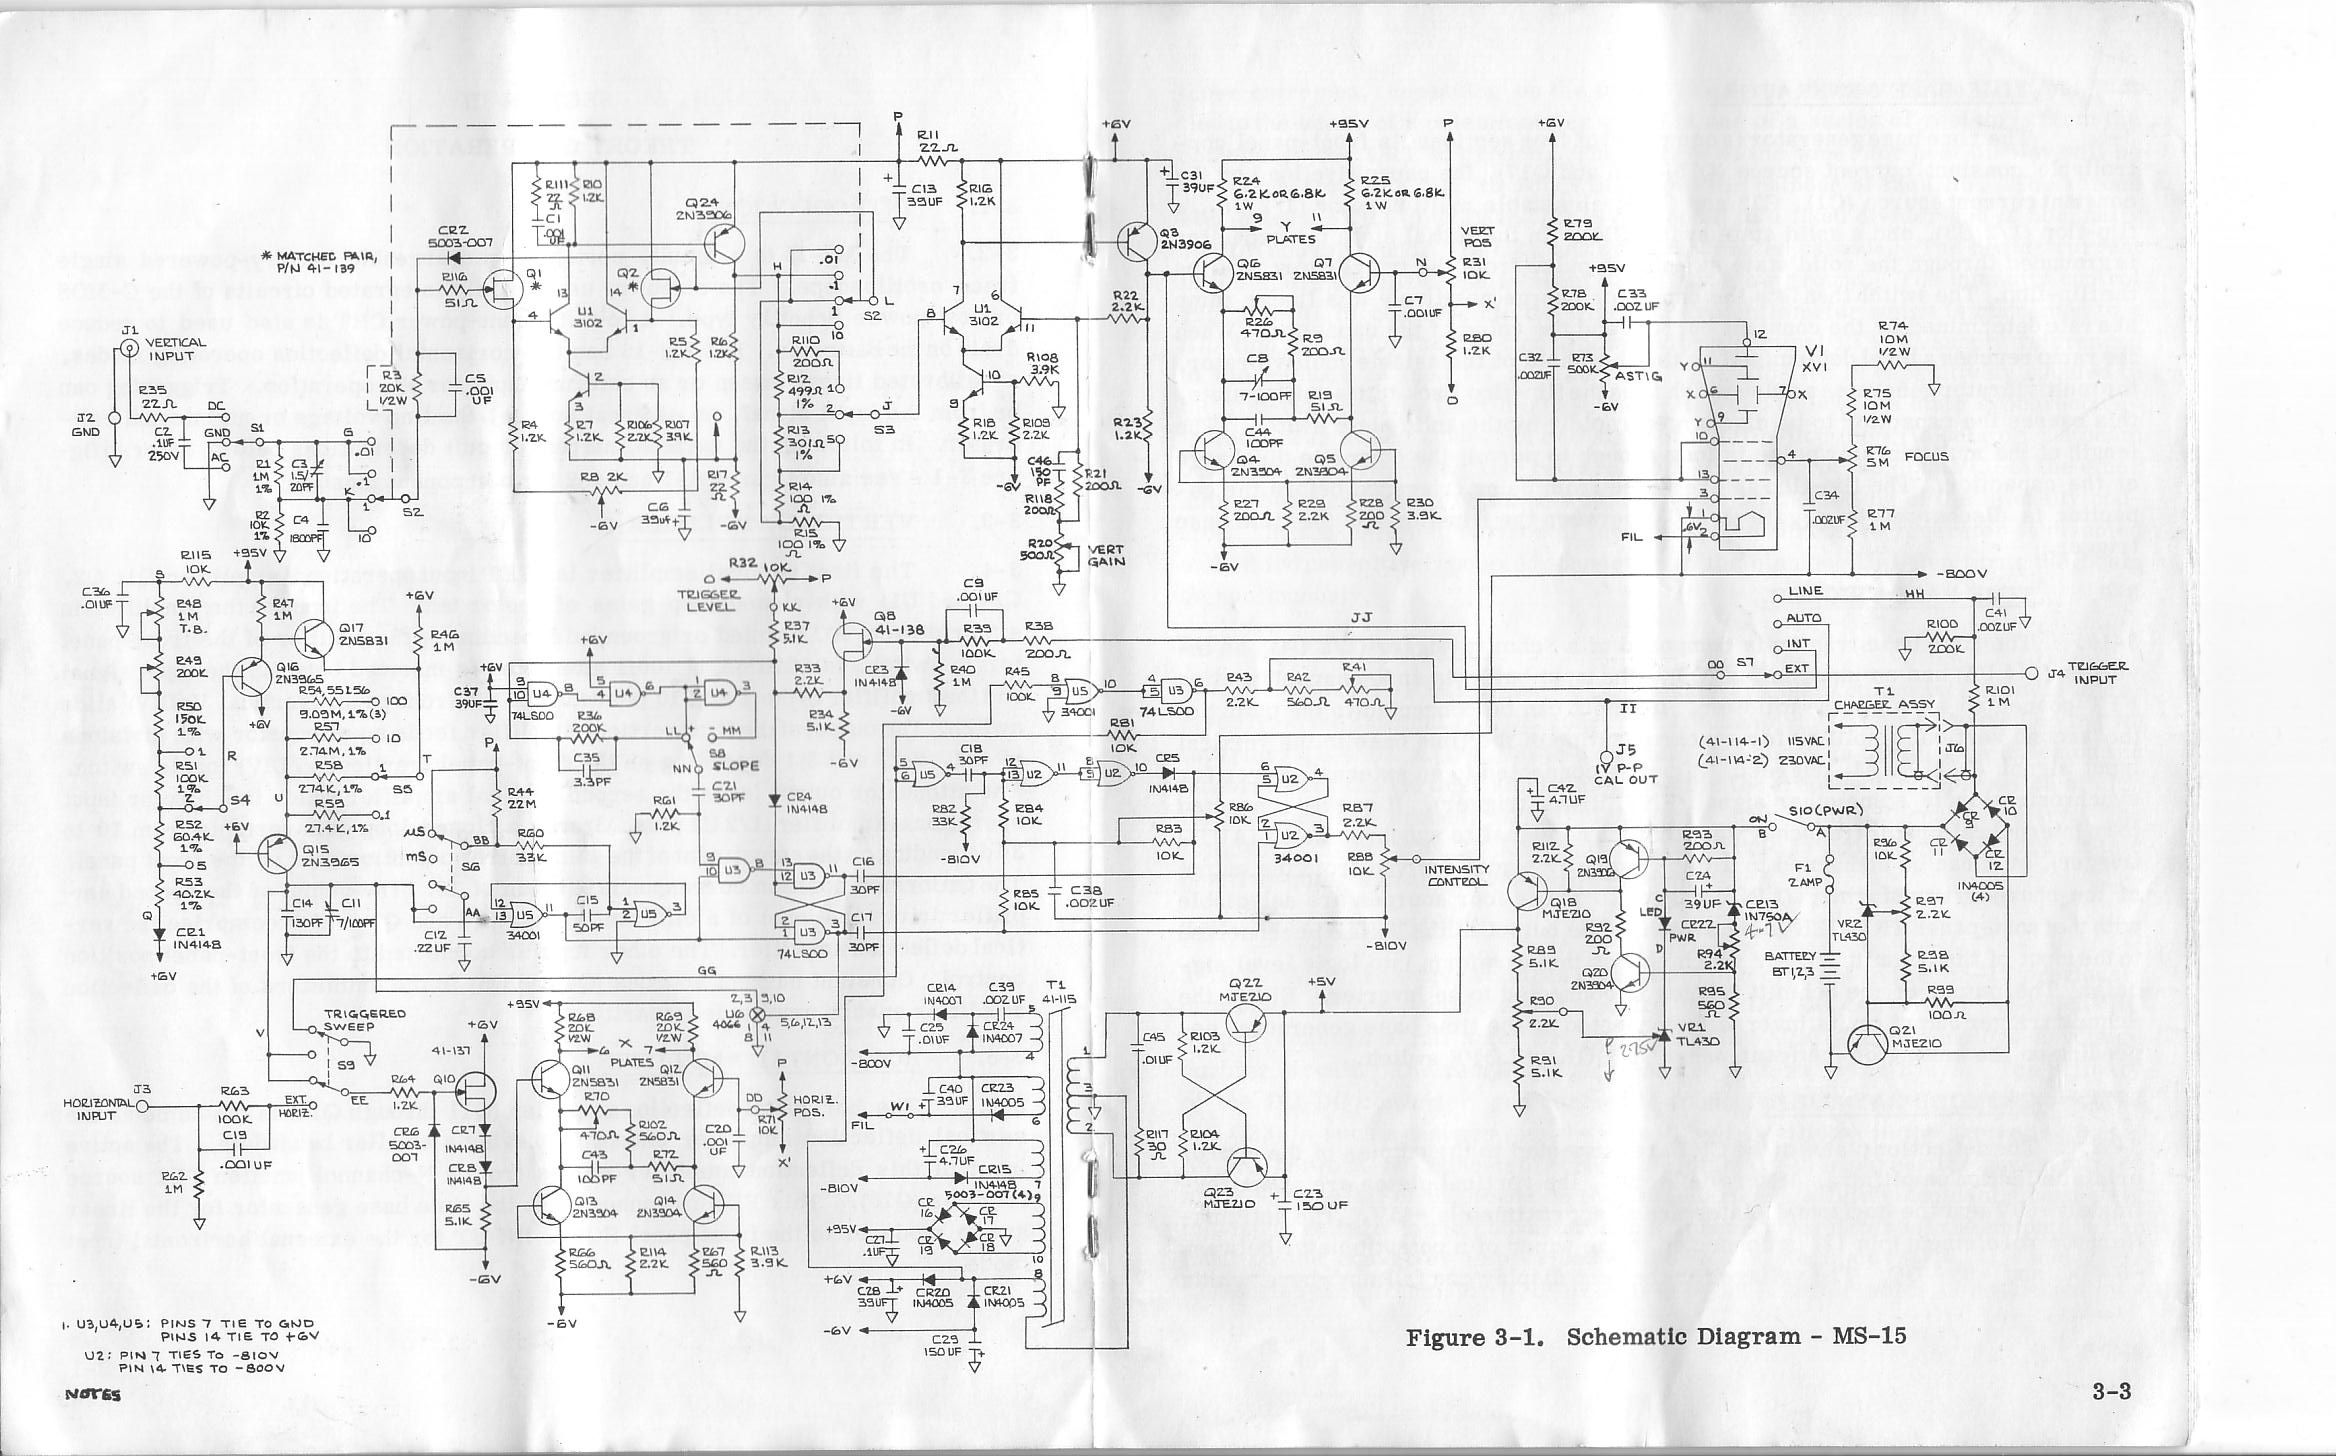 ms15 schematic wiring diagram for whirlpool dryer the wiring diagram GMC Factory Stereo Wiring Diagrams at crackthecode.co